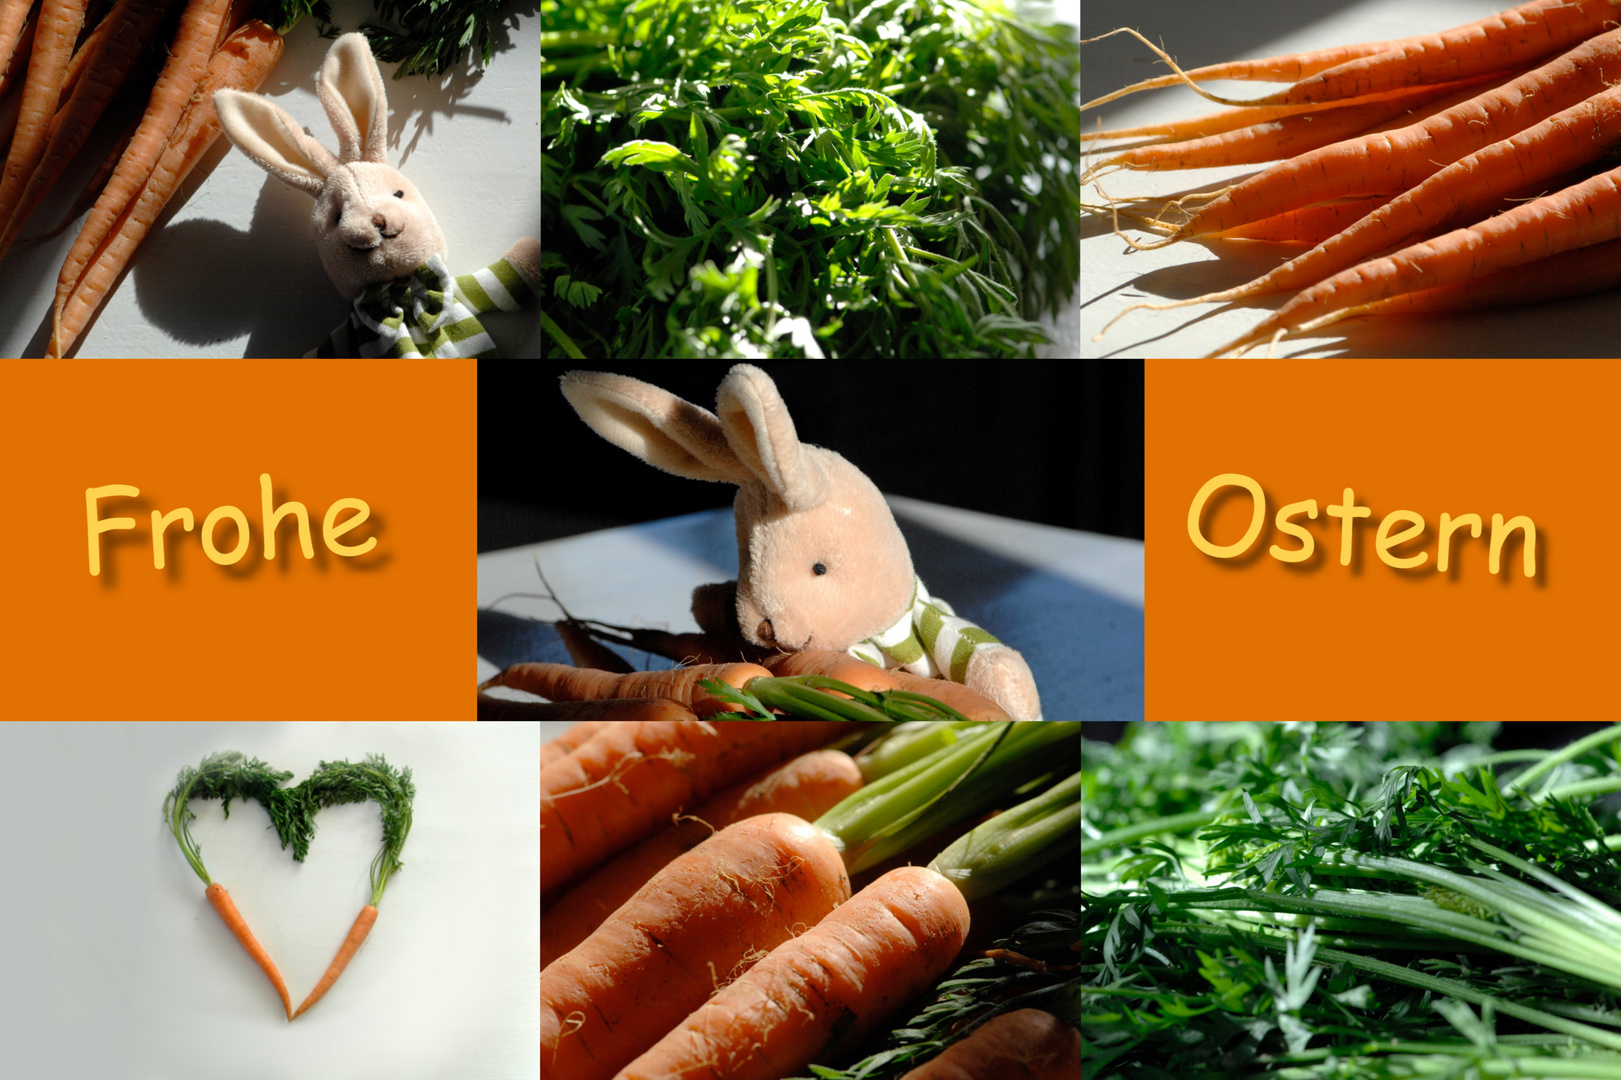 Frohe Ostern.....